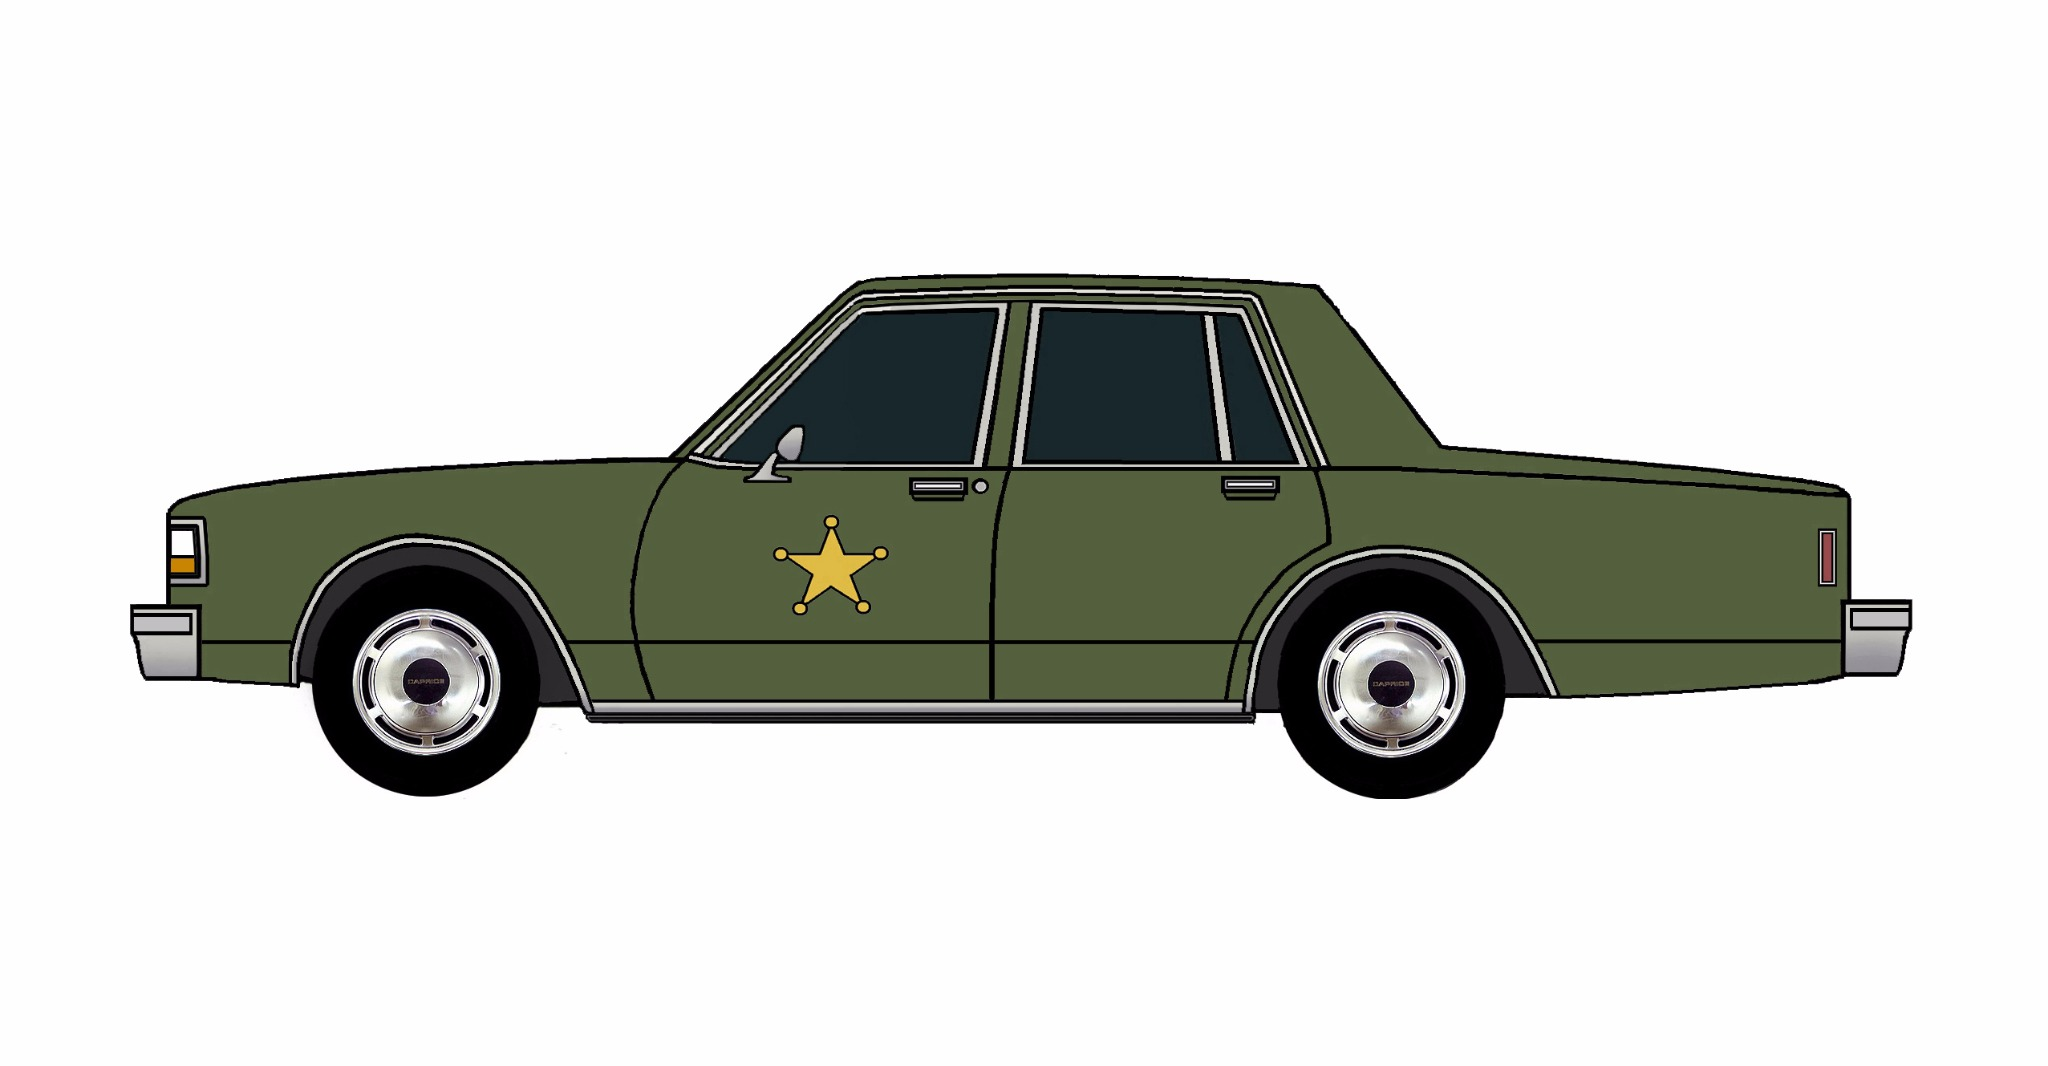 1987 Chevy Caprice 9C1 ARMY GREEN